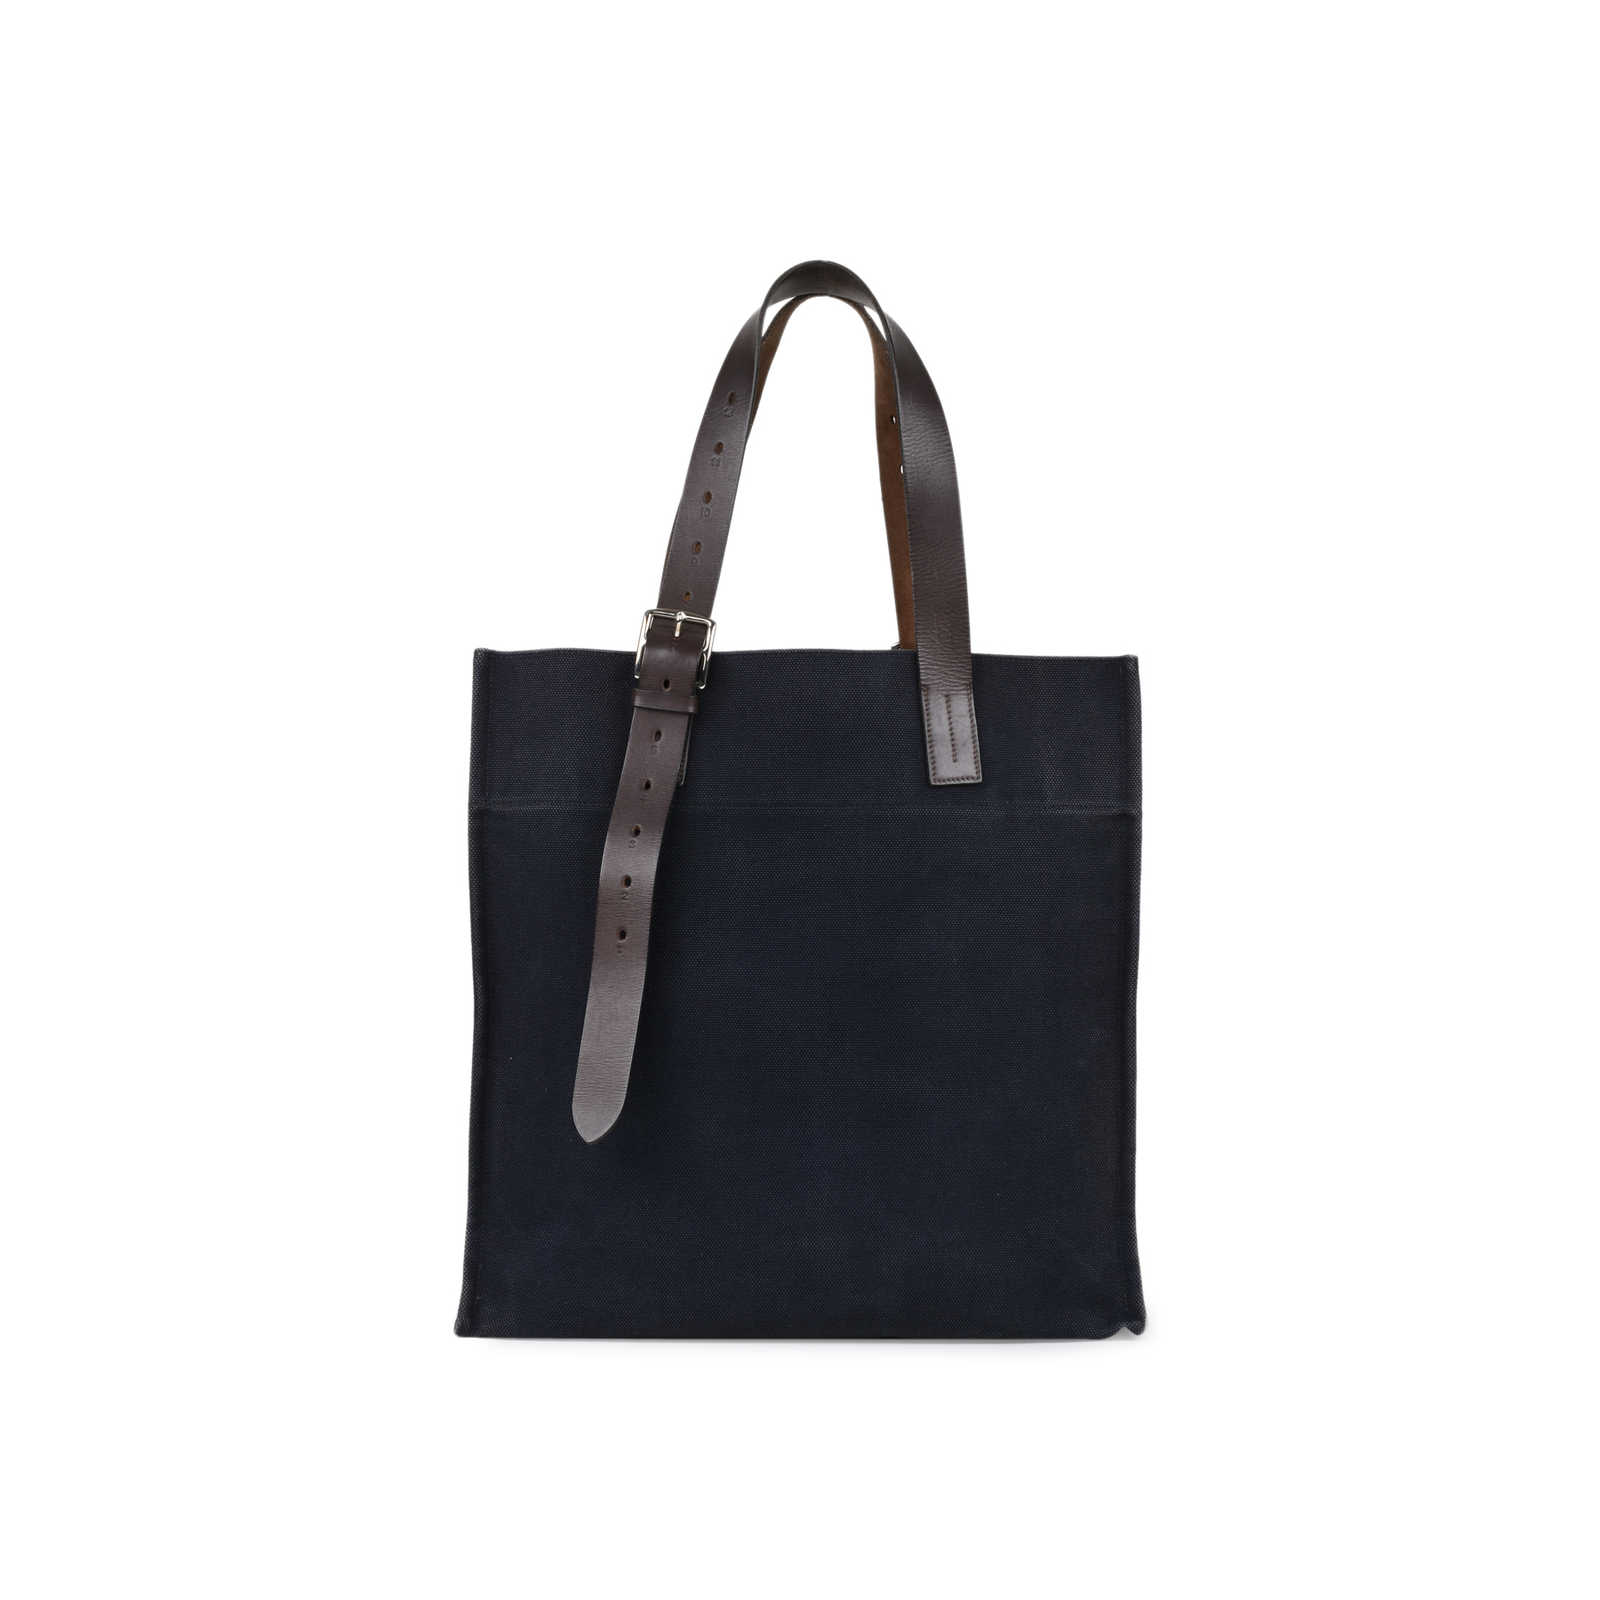 7531a0613d14 Authentic Second Hand Hermès Etriviere Shopping Bag (PSS-506-00012) -  Thumbnail ...